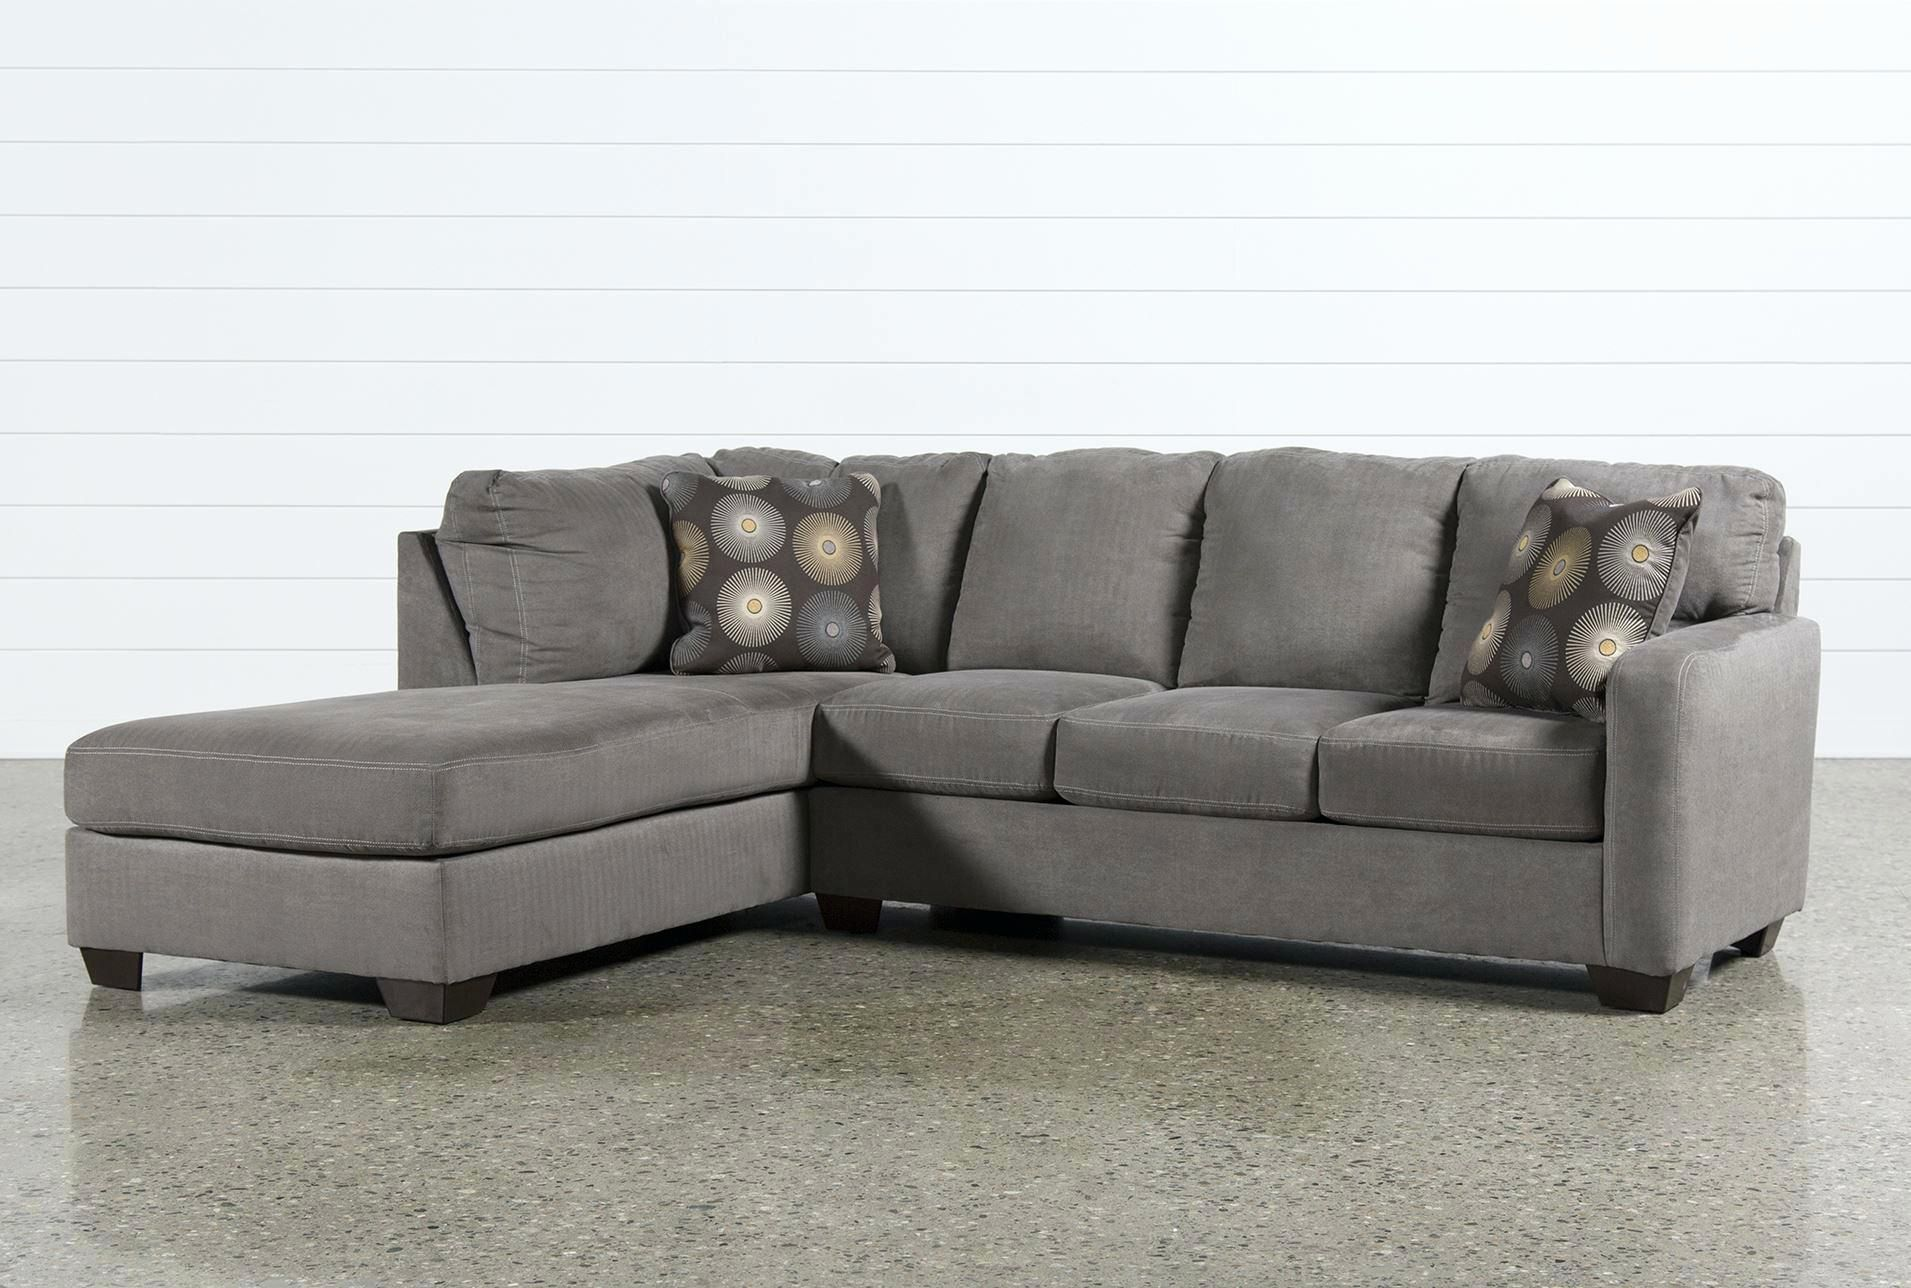 Lovely Cindy Crawford Bailey Microfiber Chaise Sofa